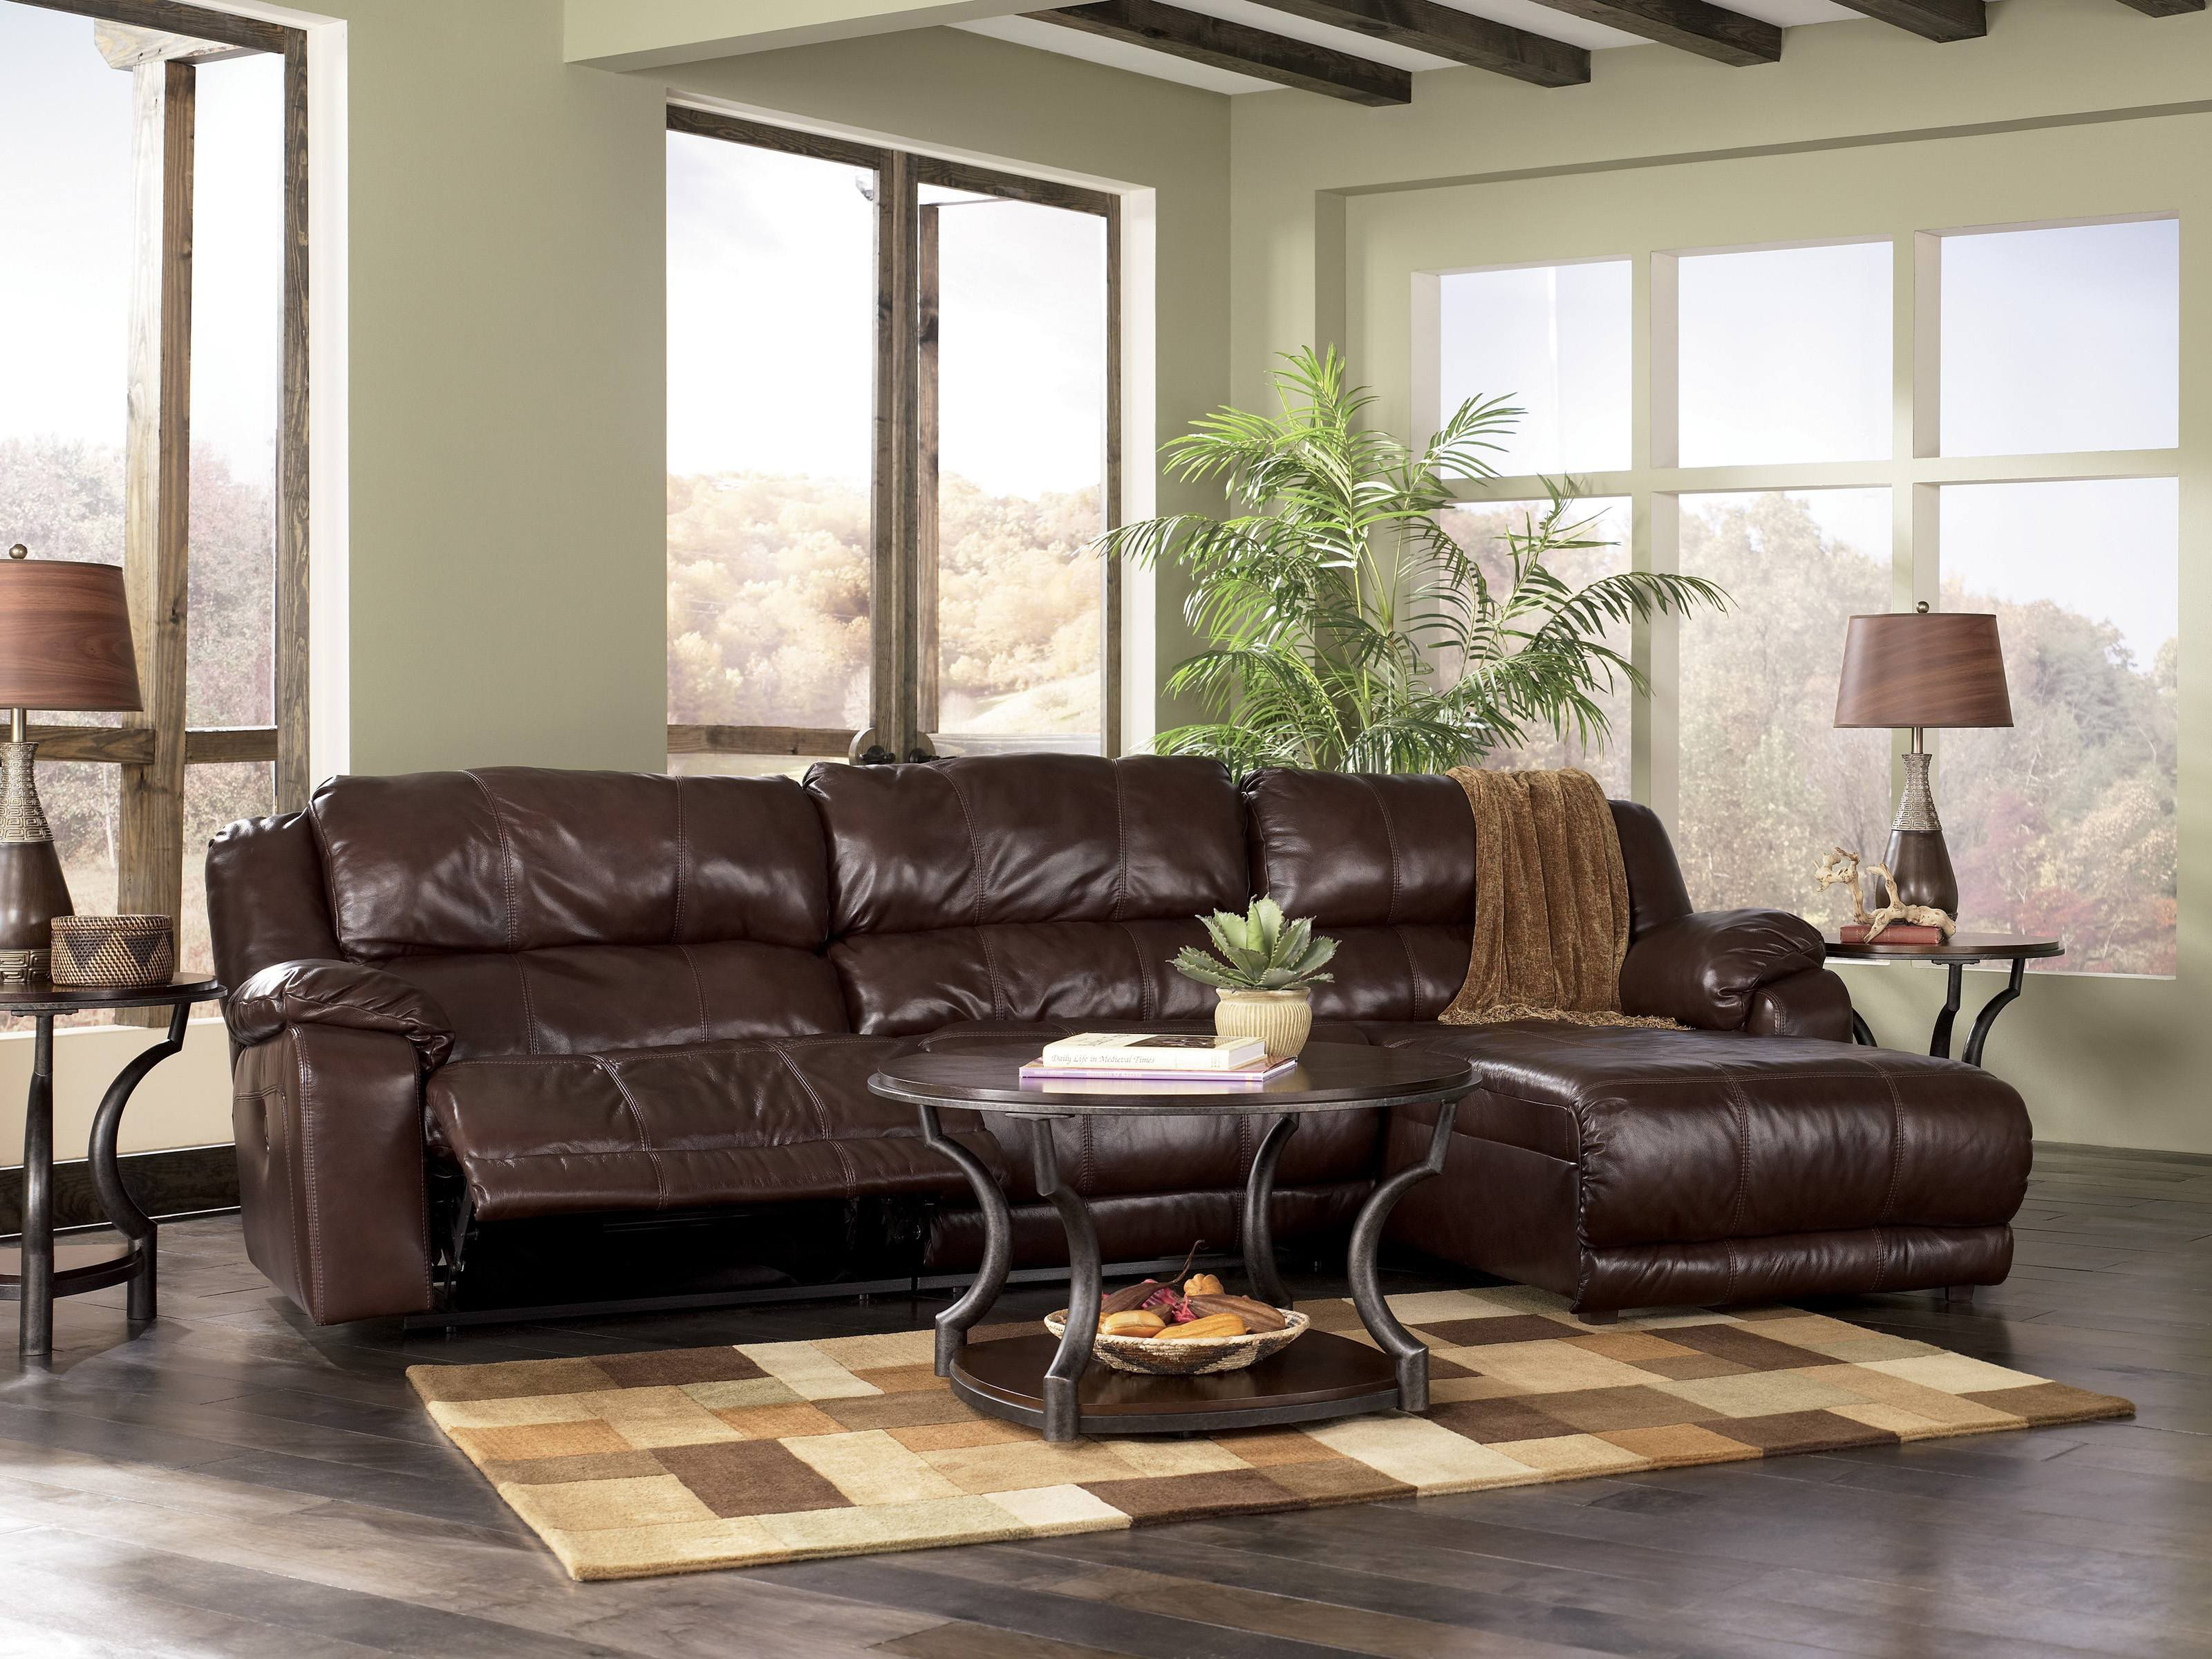 sofas sectional size with leather sofa bed ikea queen recliners sleeper apartment